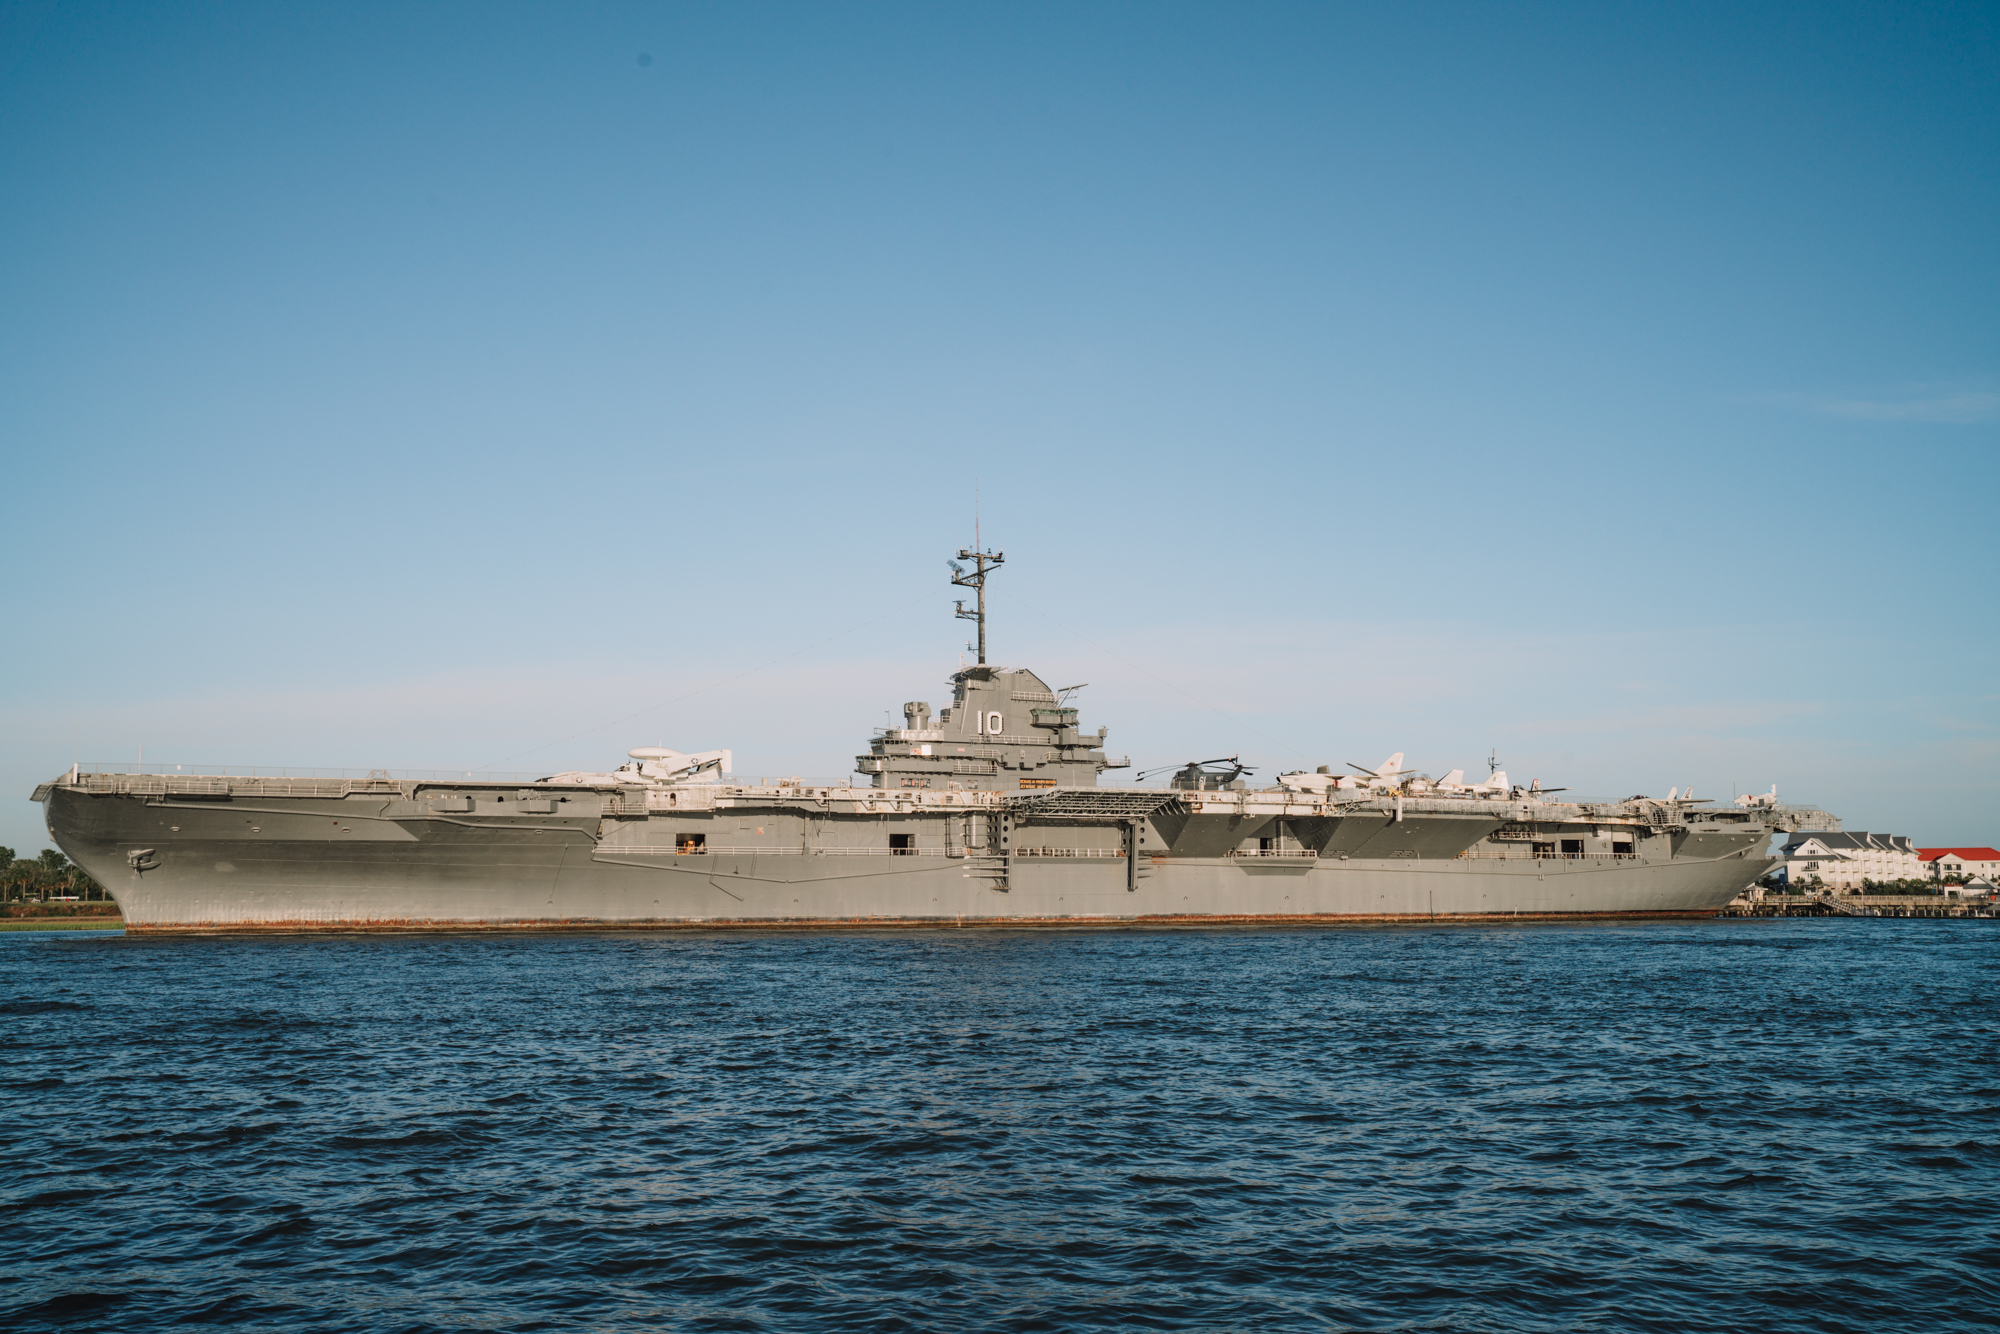 A gray naval ship sits on the water